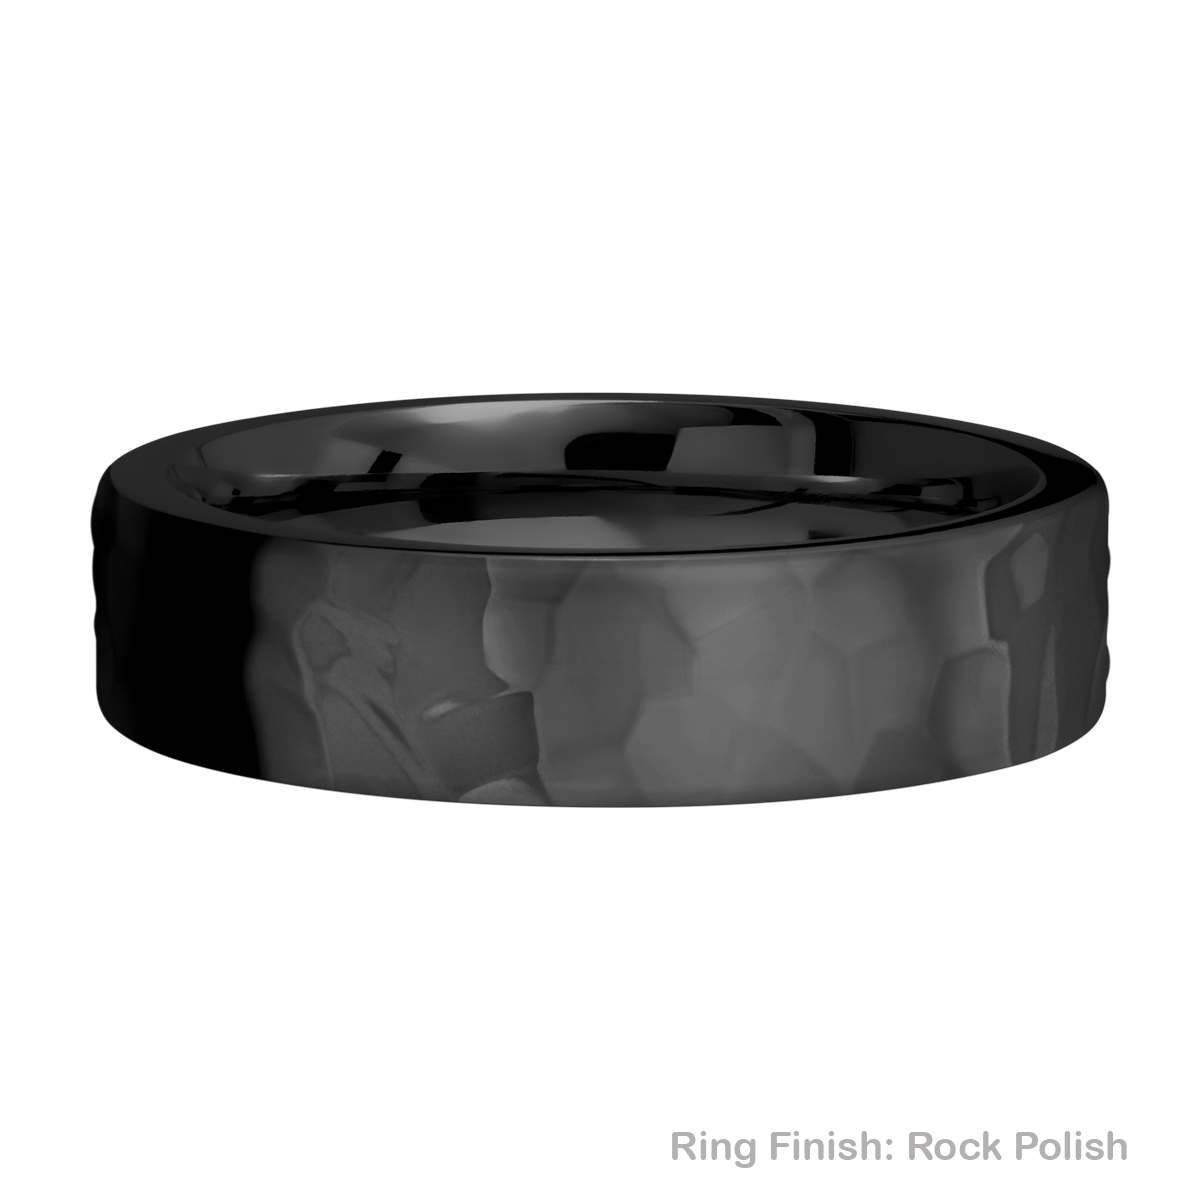 Lashbrook Z6FR Zirconium Wedding Ring or Band Alternative View 14